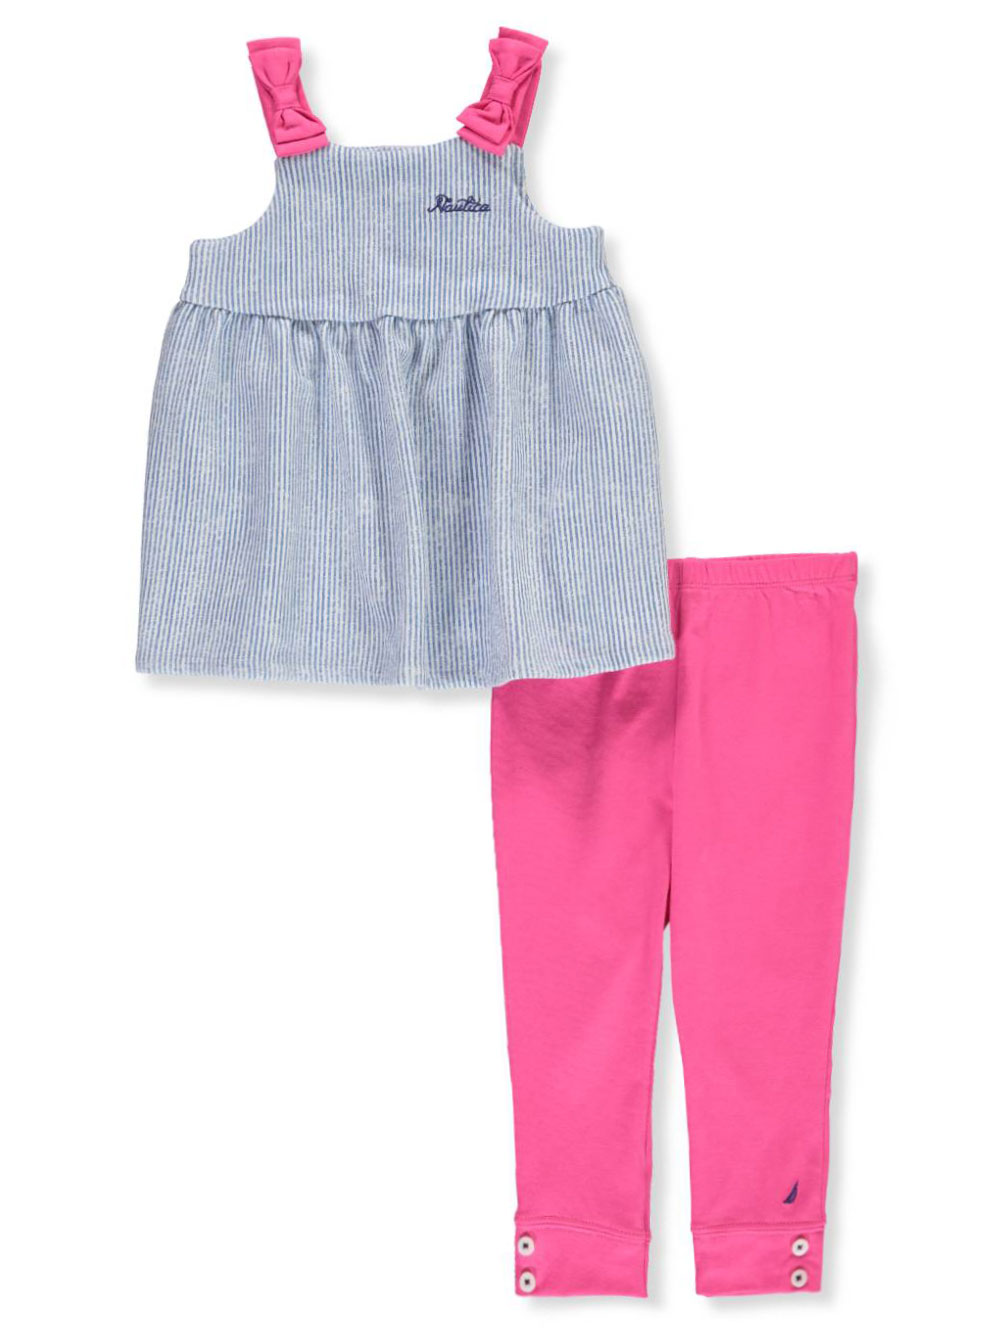 deb4b88c3 Baby Girls' 2-Piece Leggings Set Outfit by Nautica in Blue/pink from  Cookie's Kids